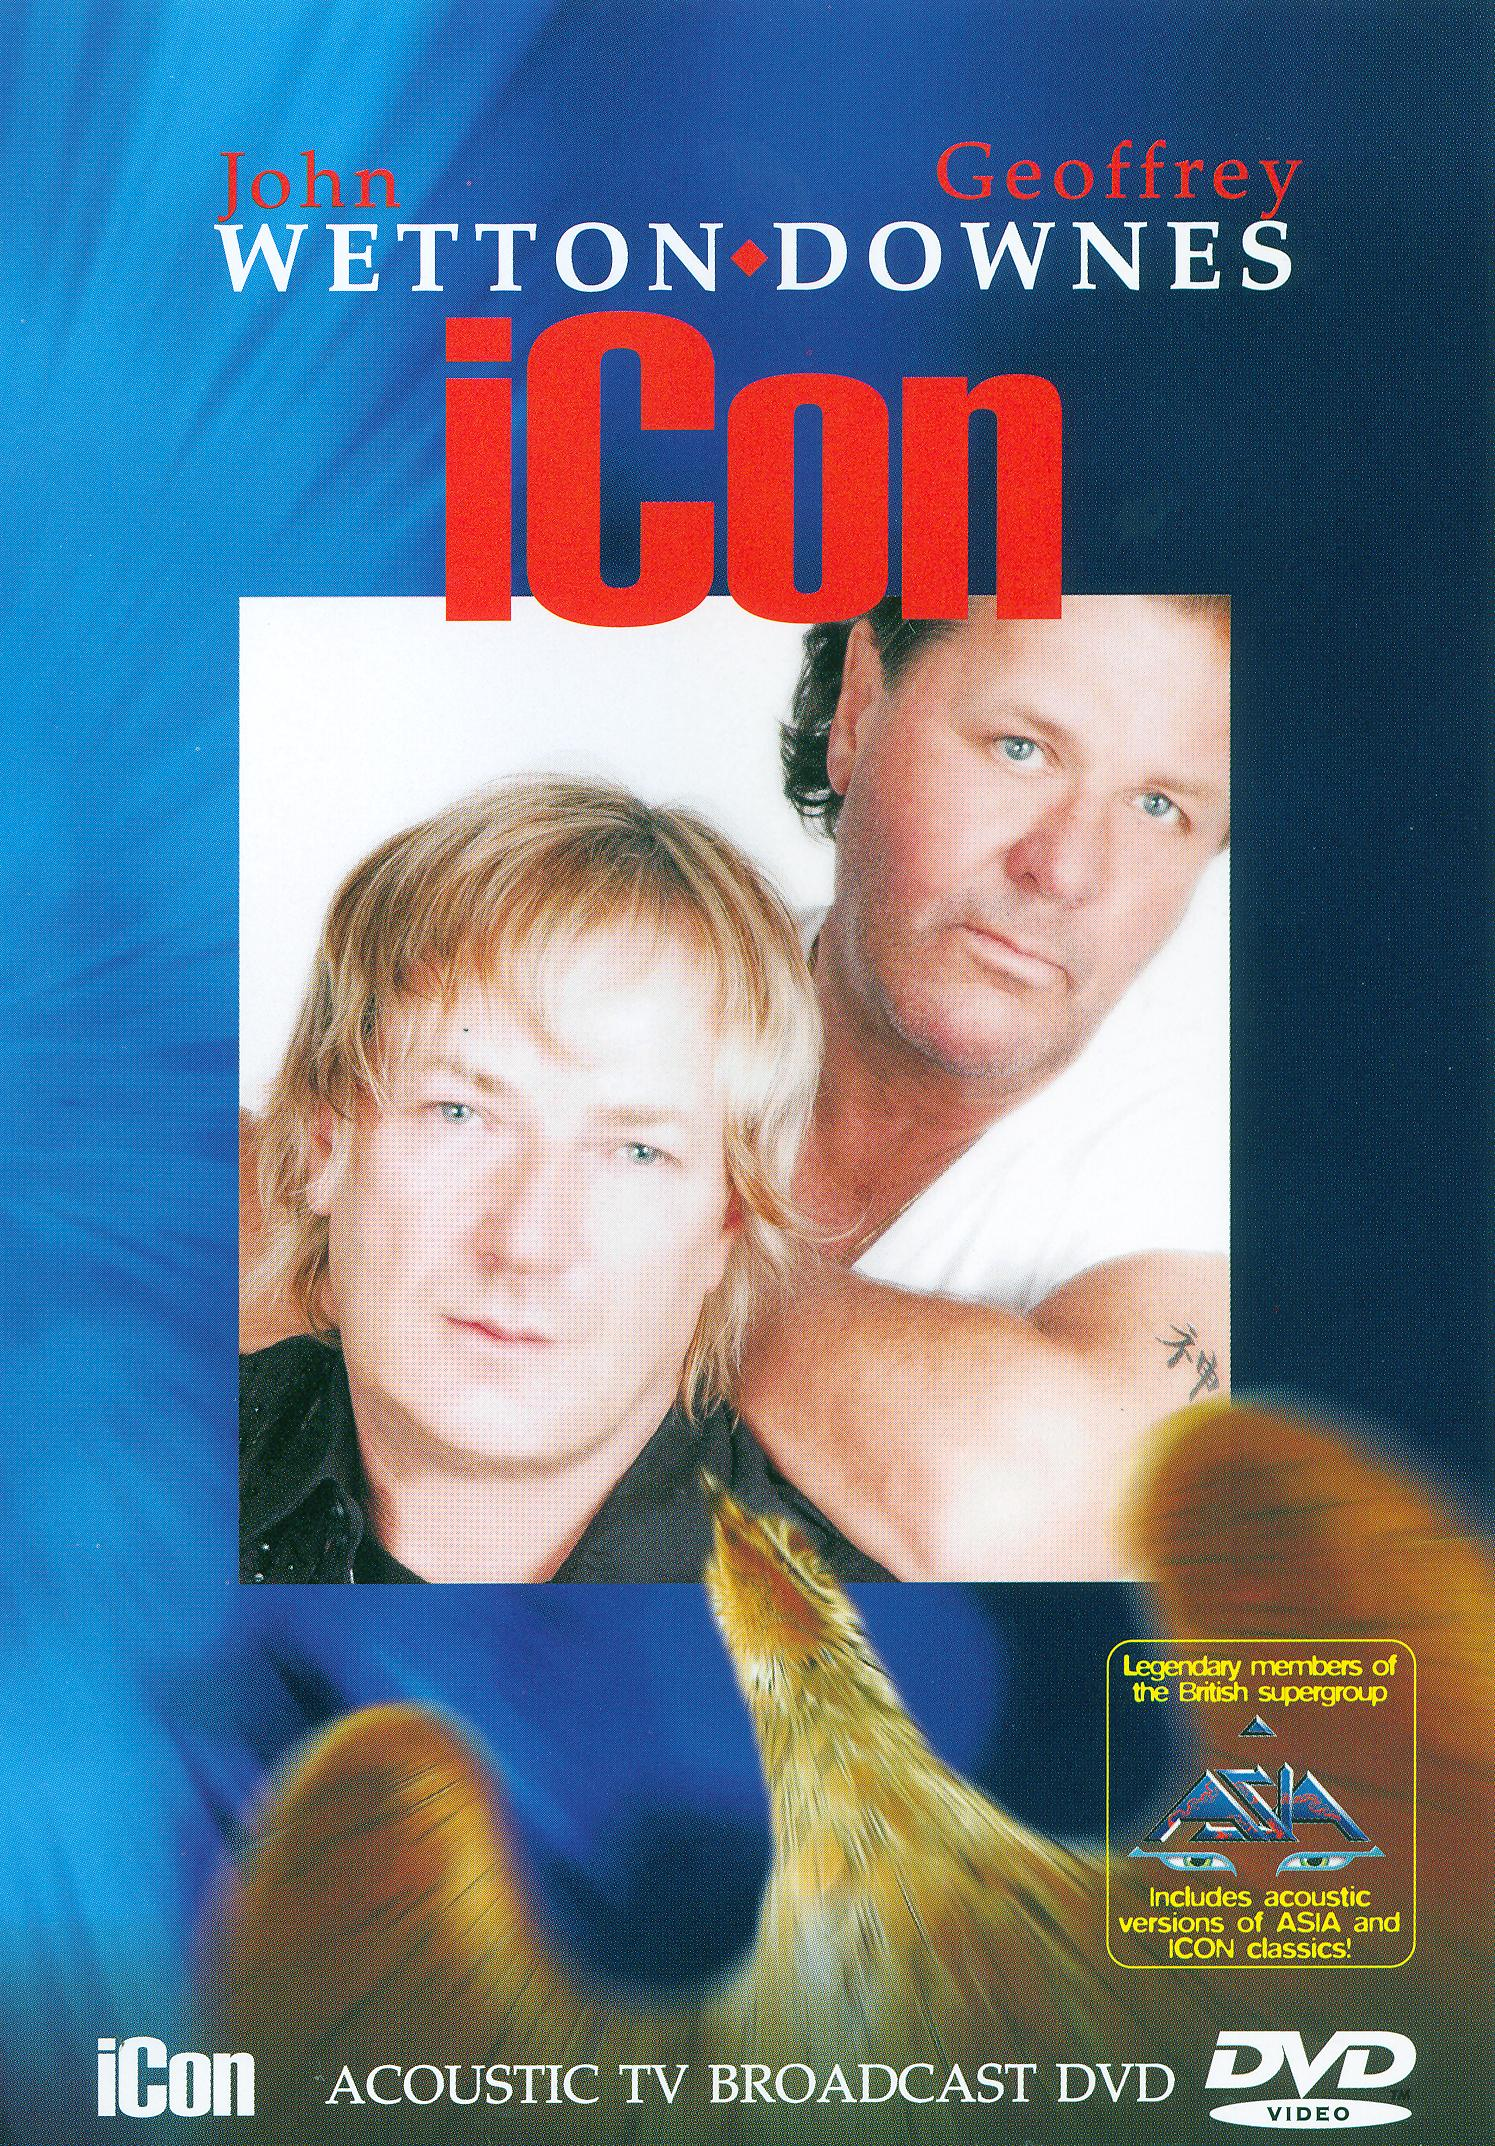 John Wetton and Geoffrey Downes: Acoustic TV